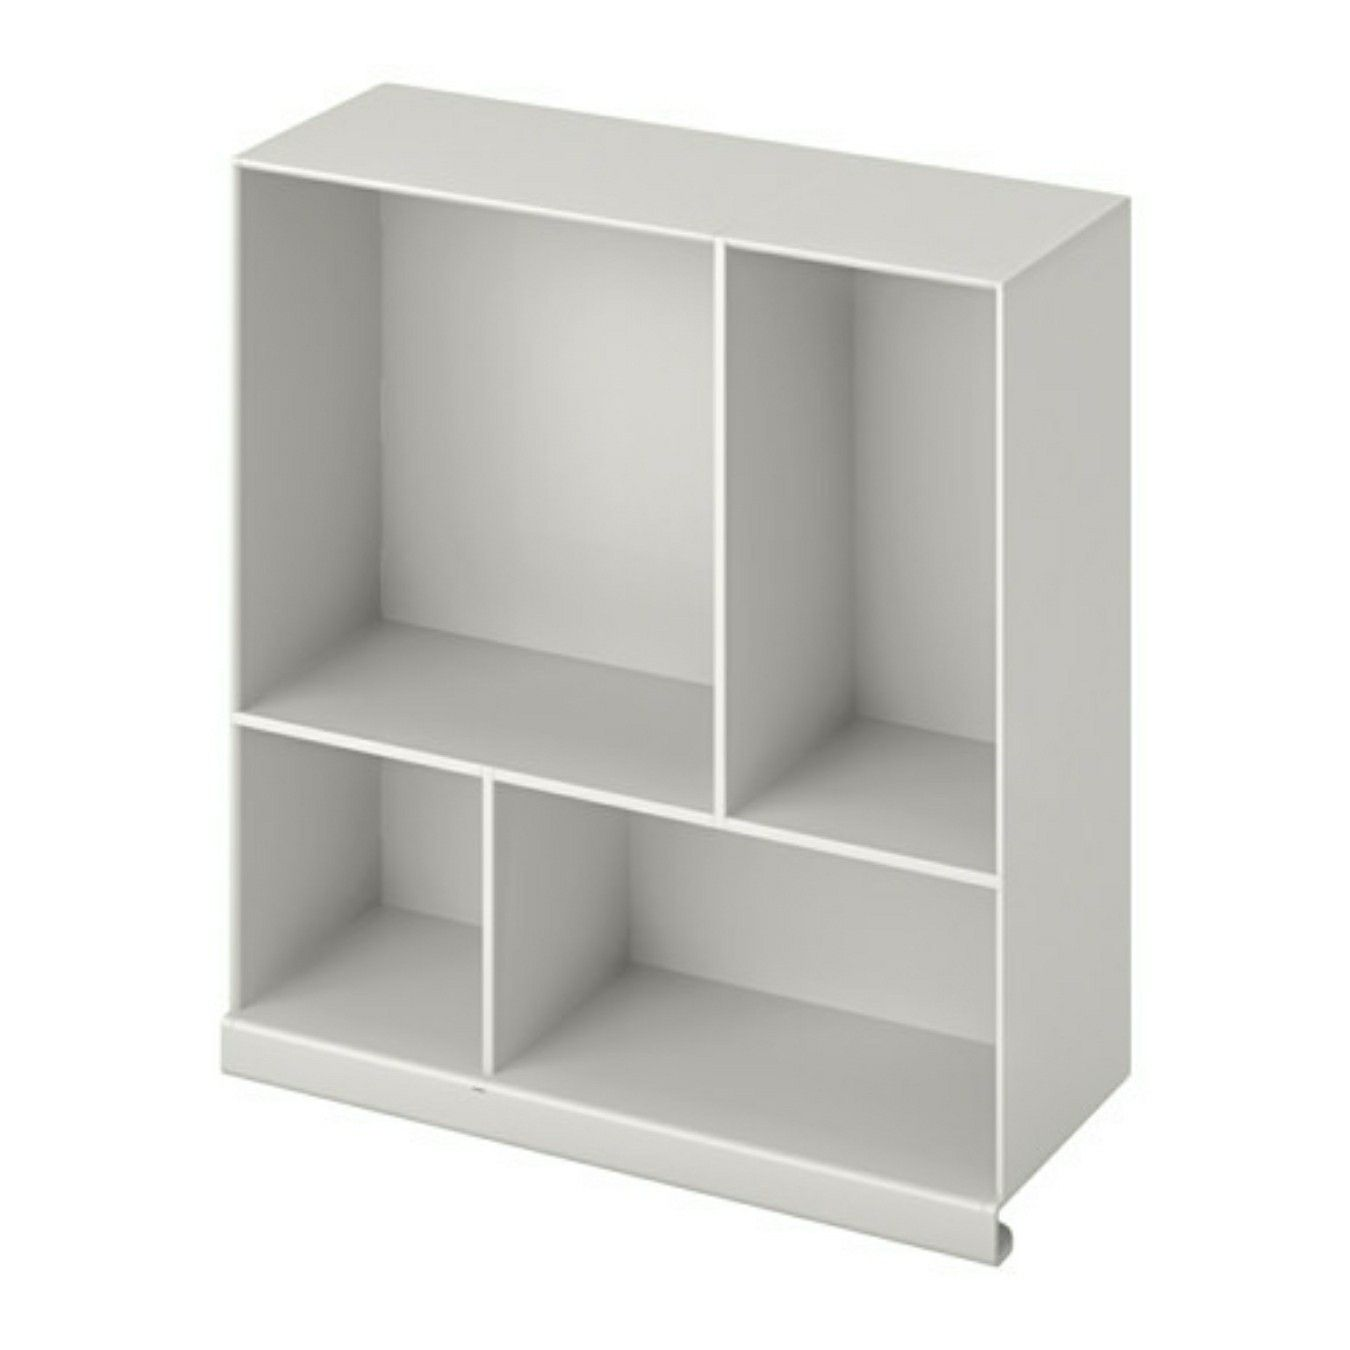 Kallax At Ikea Shelf Insert For The Home Pinterest Ikea  # Kallax Blanc